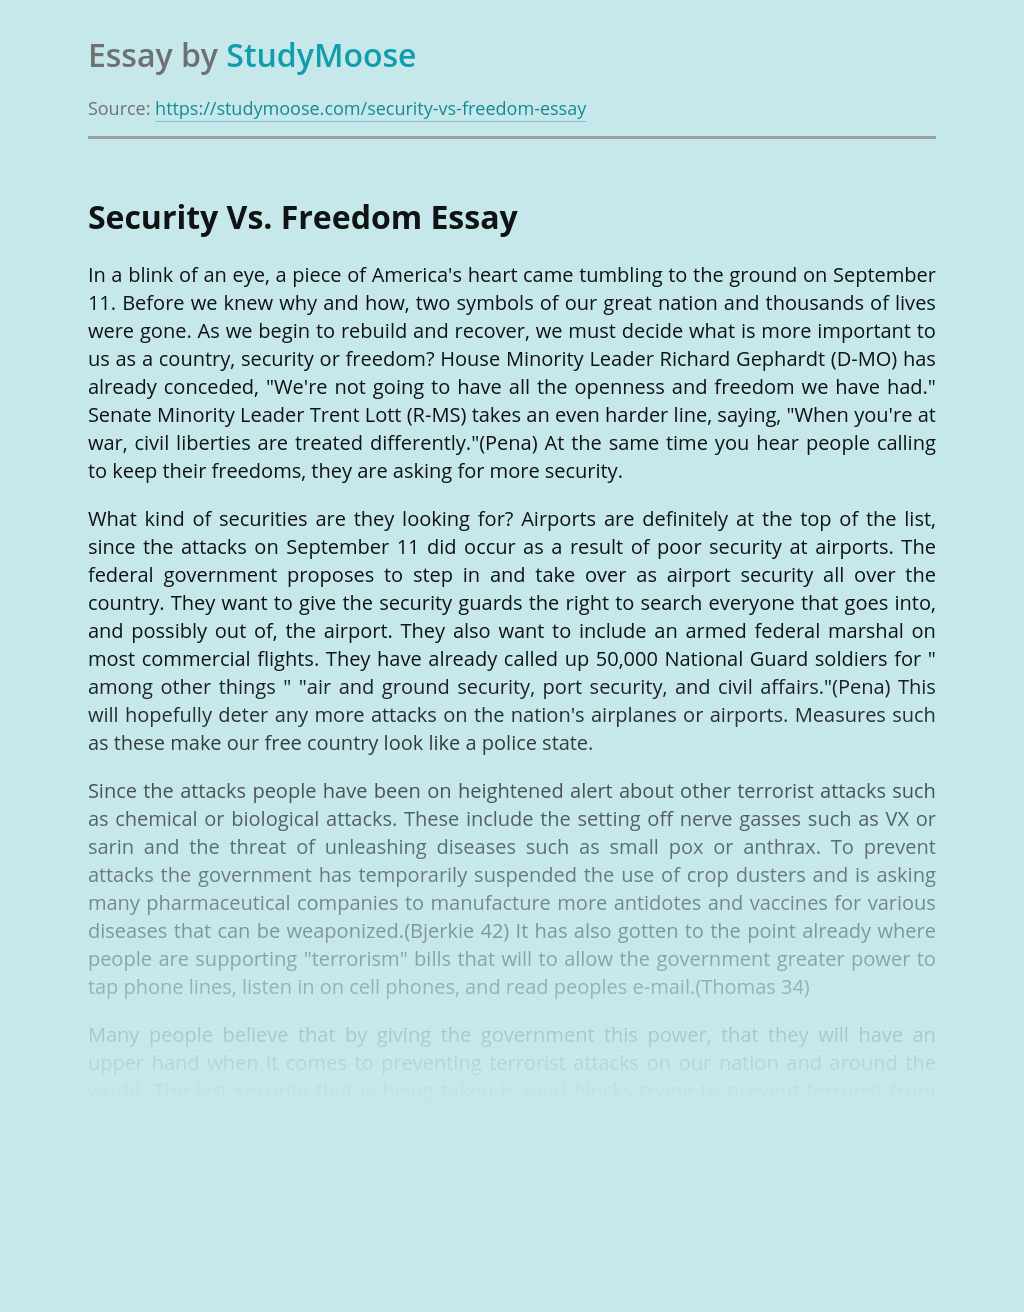 Security Vs. Freedom